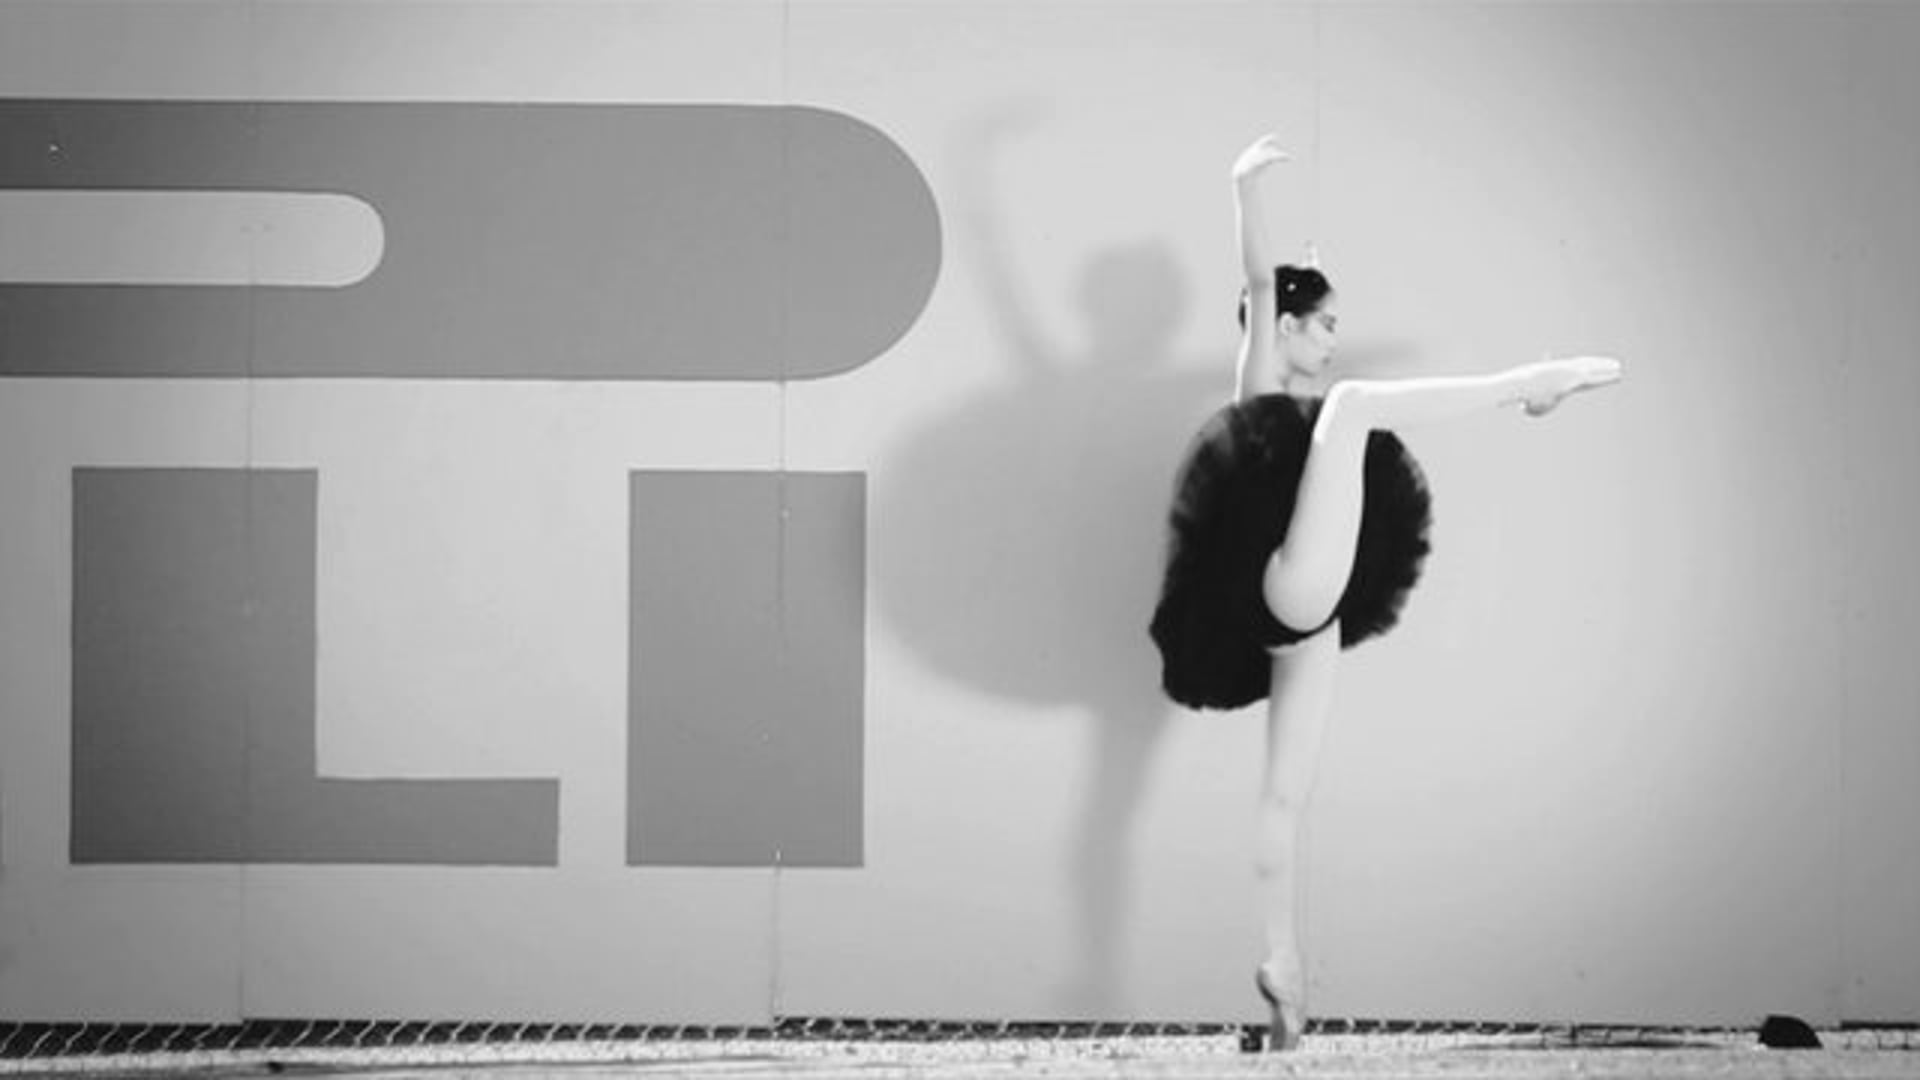 F1 / Ballet Concept Video for 2011 Canadian Grand Prix Gala